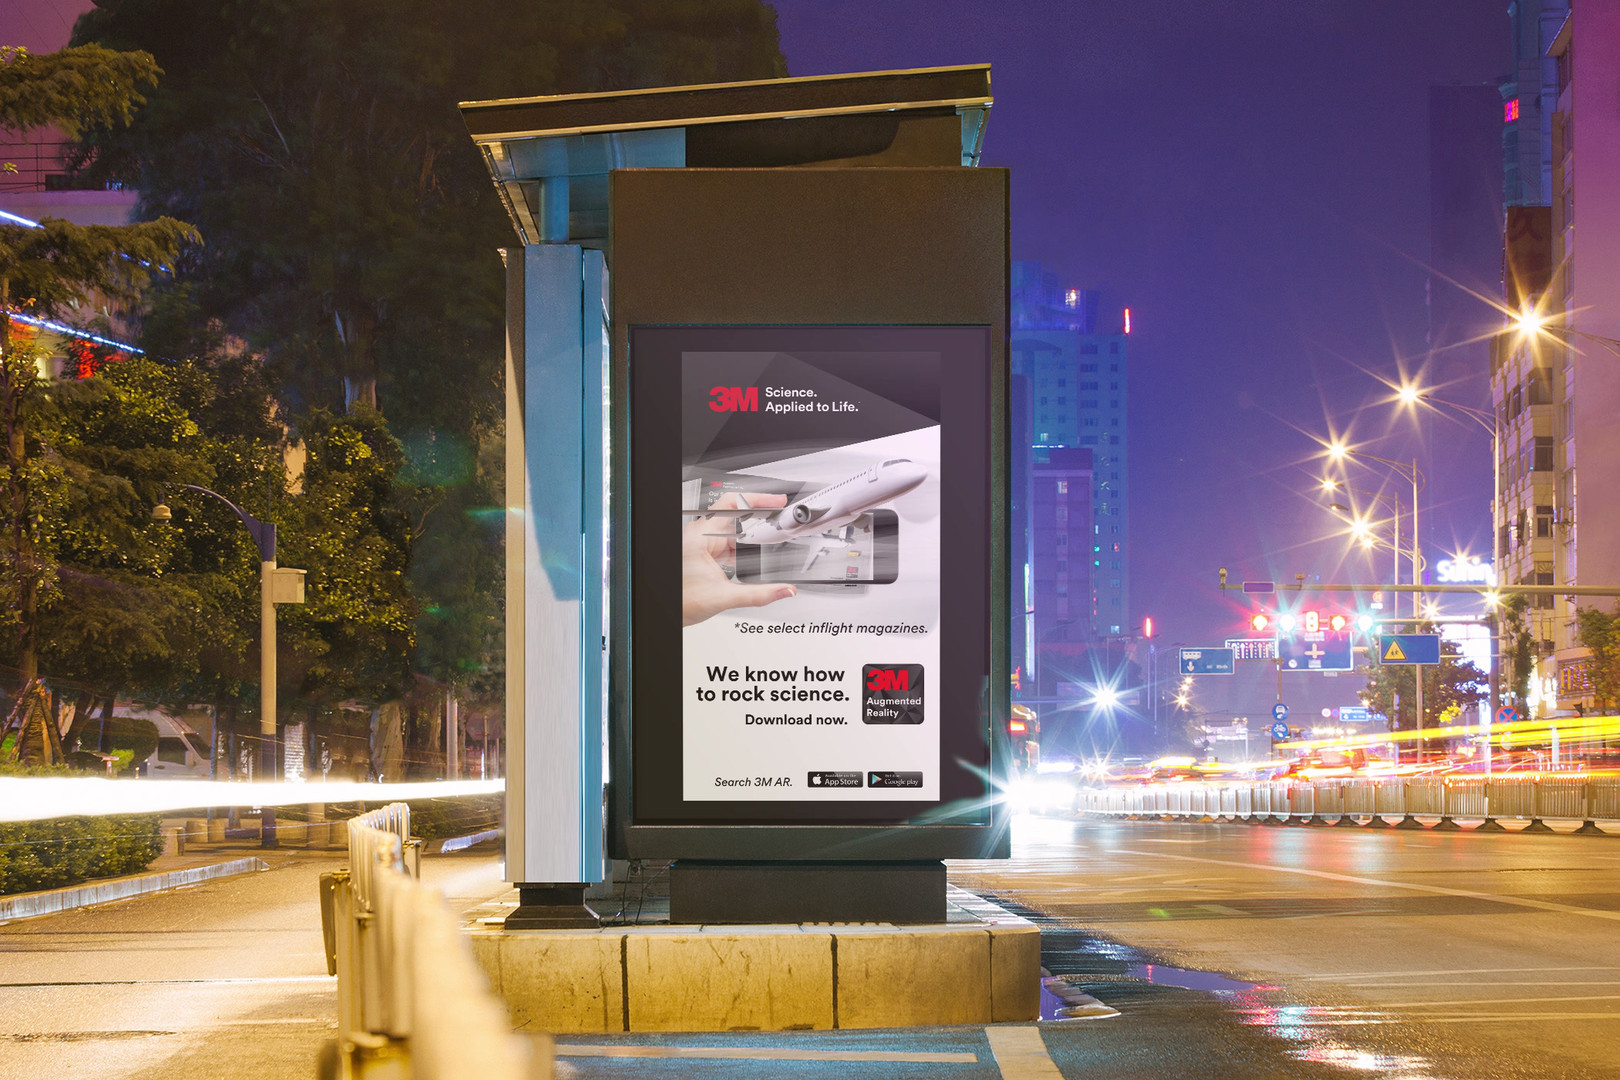 3M Augmented Reality Campaign